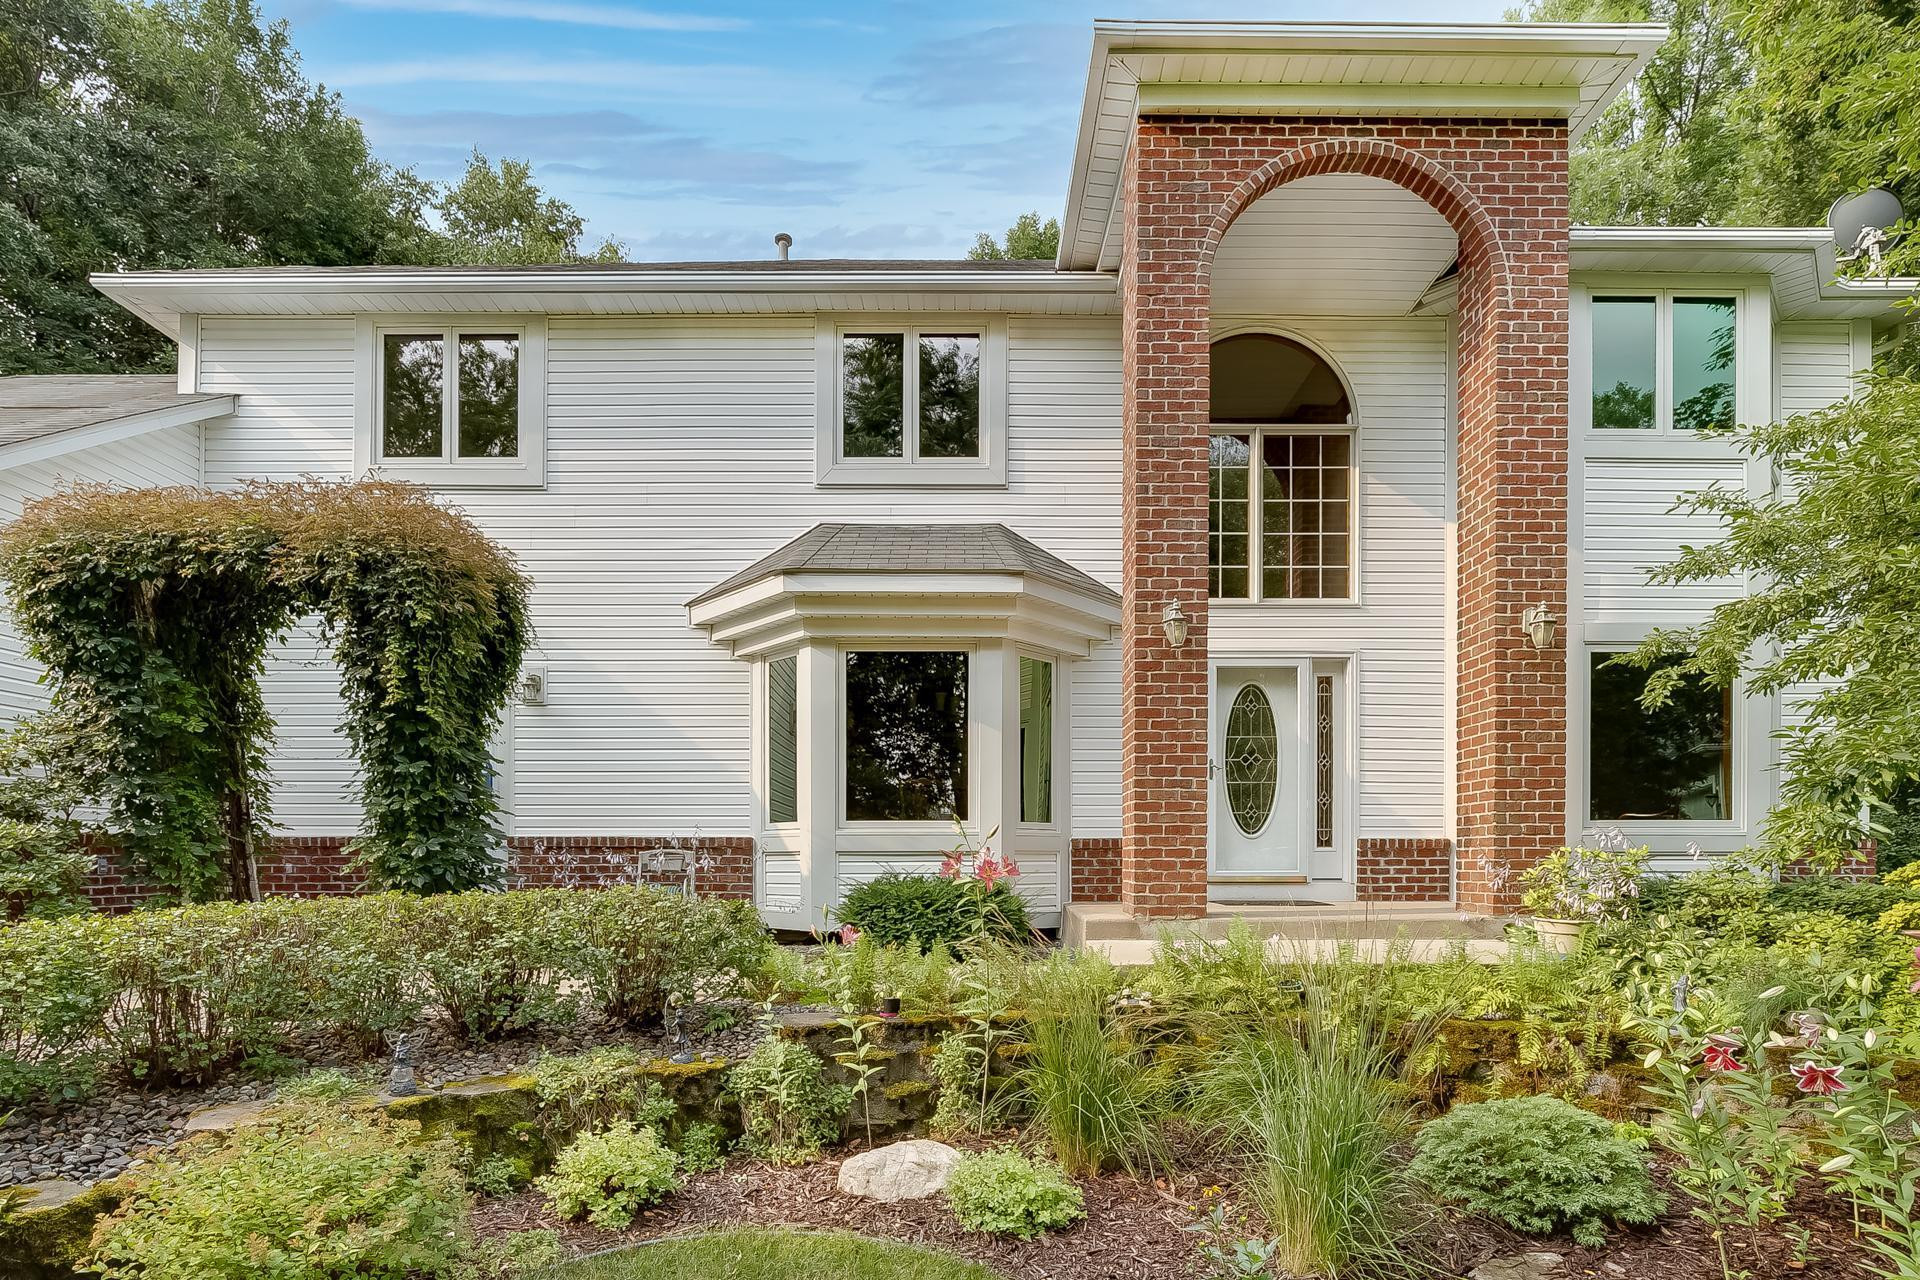 Located in Wayzata Public Schools, 3600 Alvarado Lane N, Plymouth, has six bedrooms and five bathrooms (hard to find five bedrooms and three baths on the upper level).